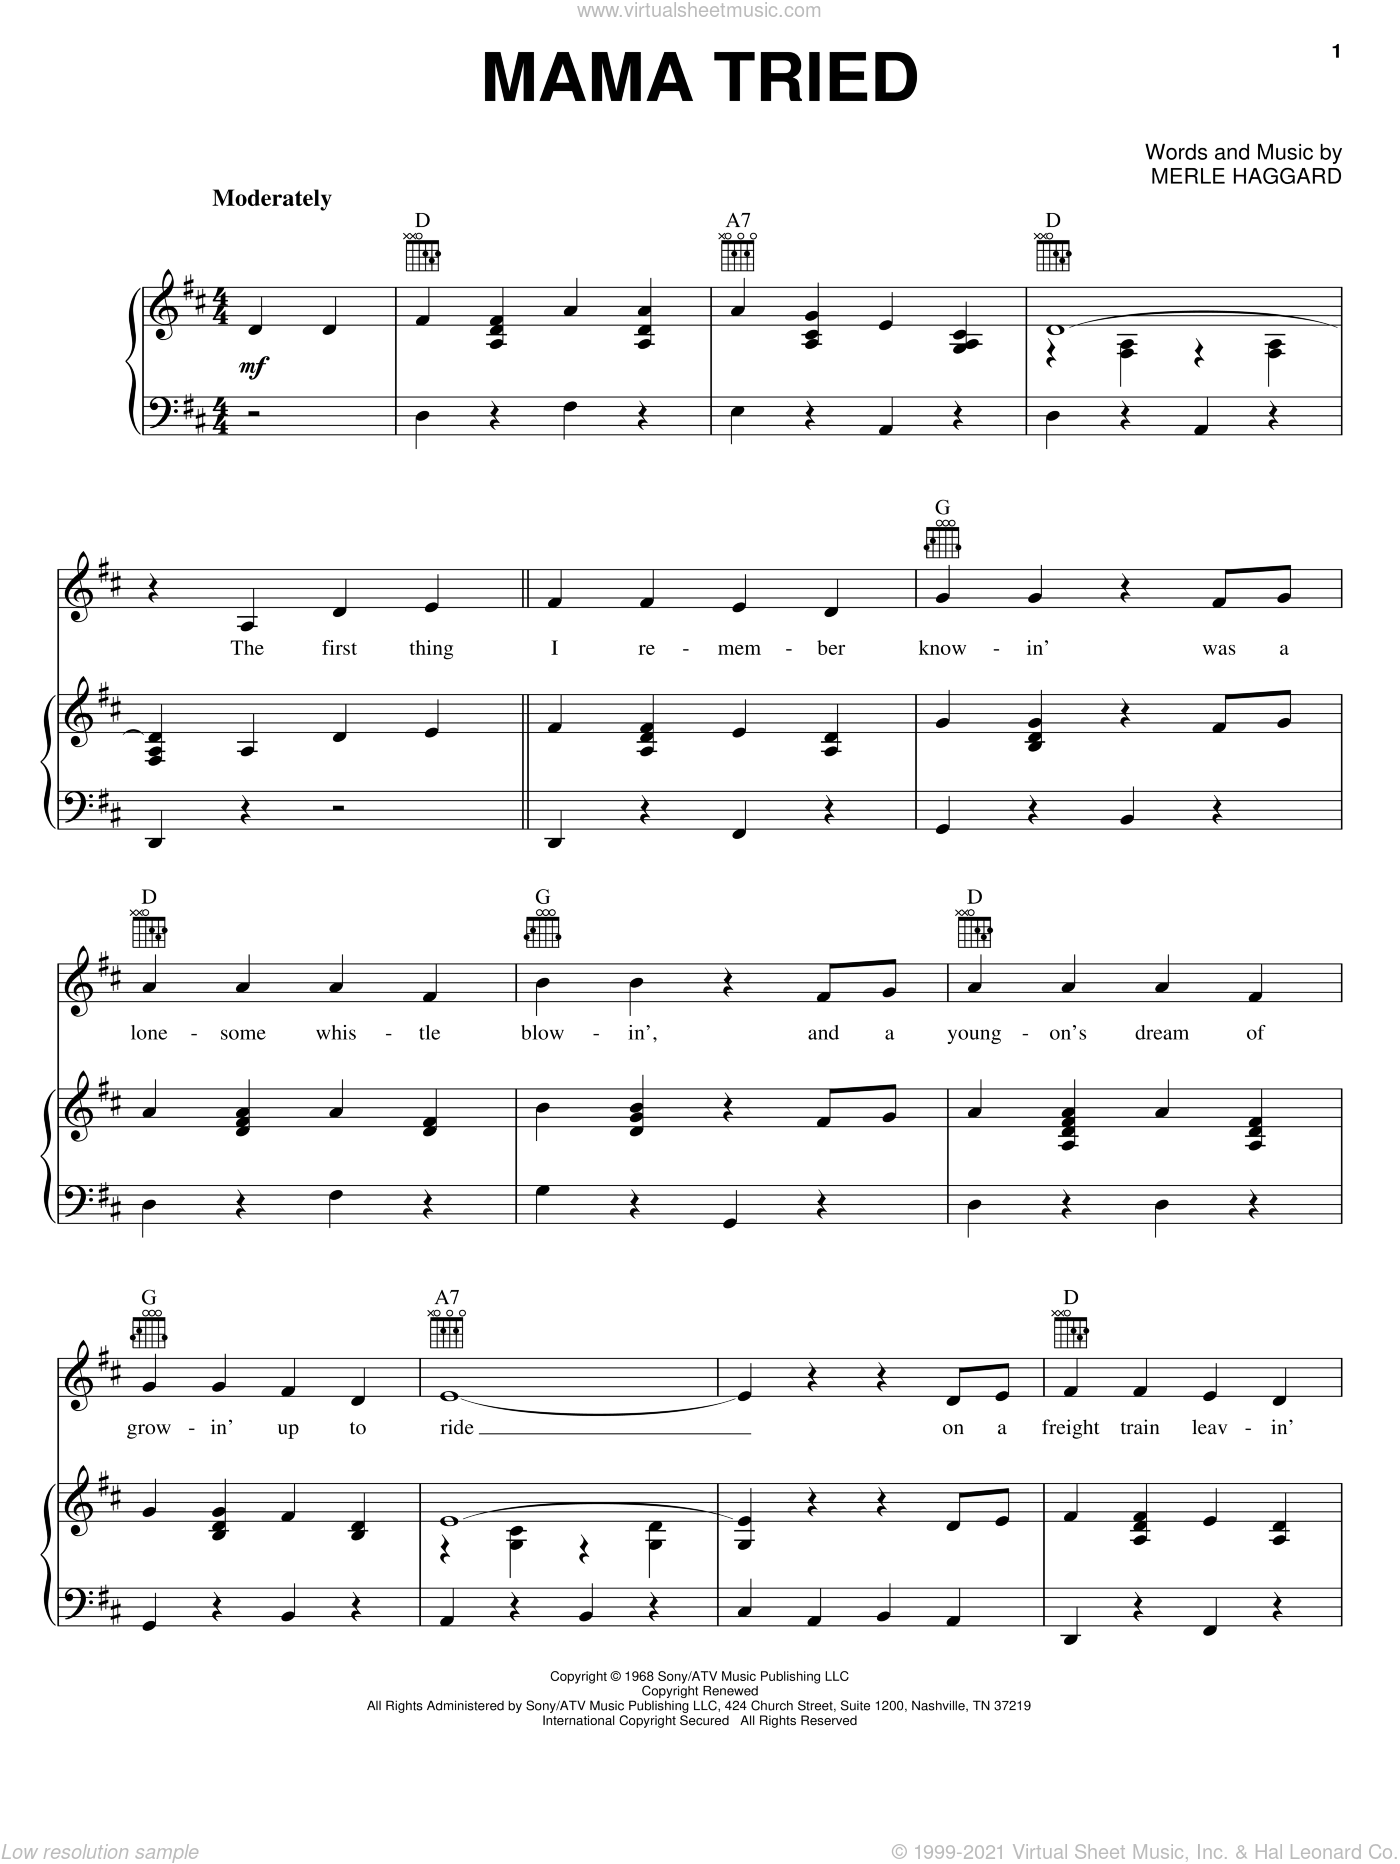 Mama Tried sheet music for voice, piano or guitar by Merle Haggard. Score Image Preview.